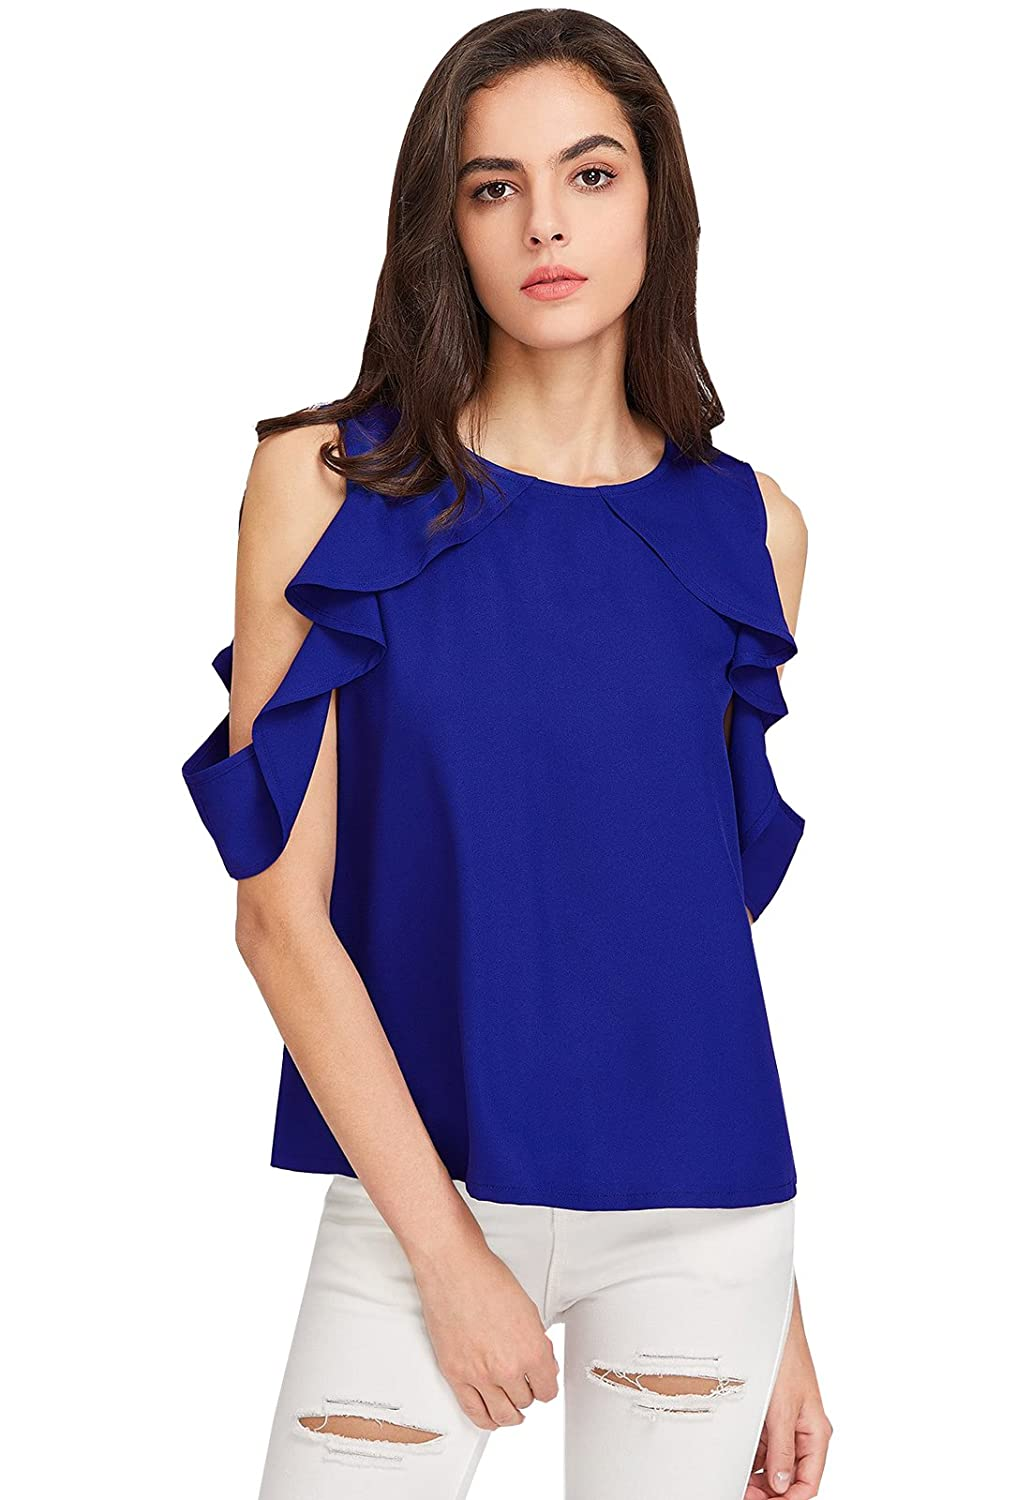 JB Fashion Women's Clothing Starts @ Rs.199